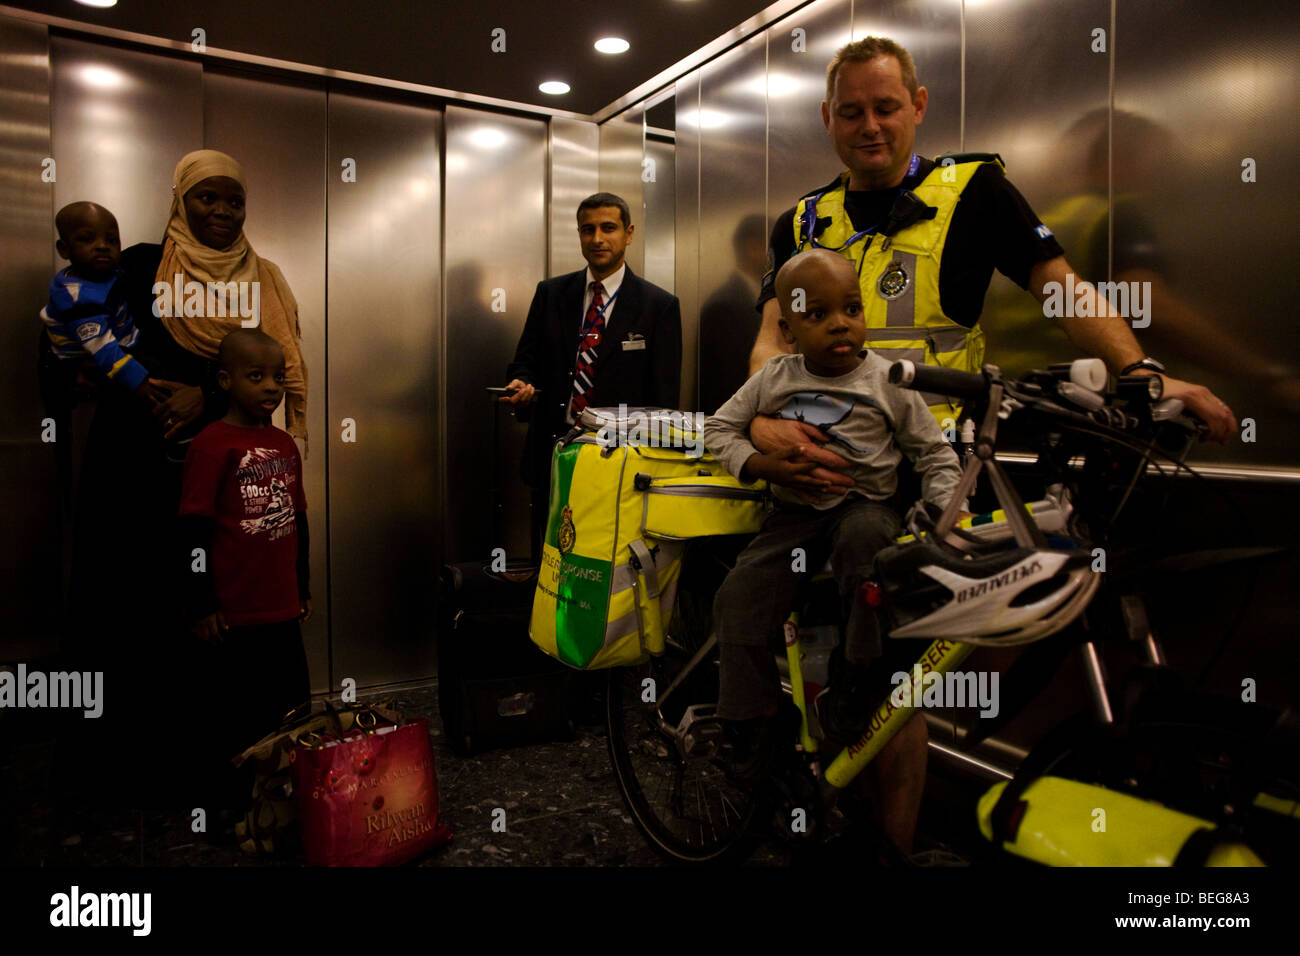 NHS Paramedic cyclist Responders holds a young passenger in a lift (elevator) within Heathrow Airport's terminal - Stock Image